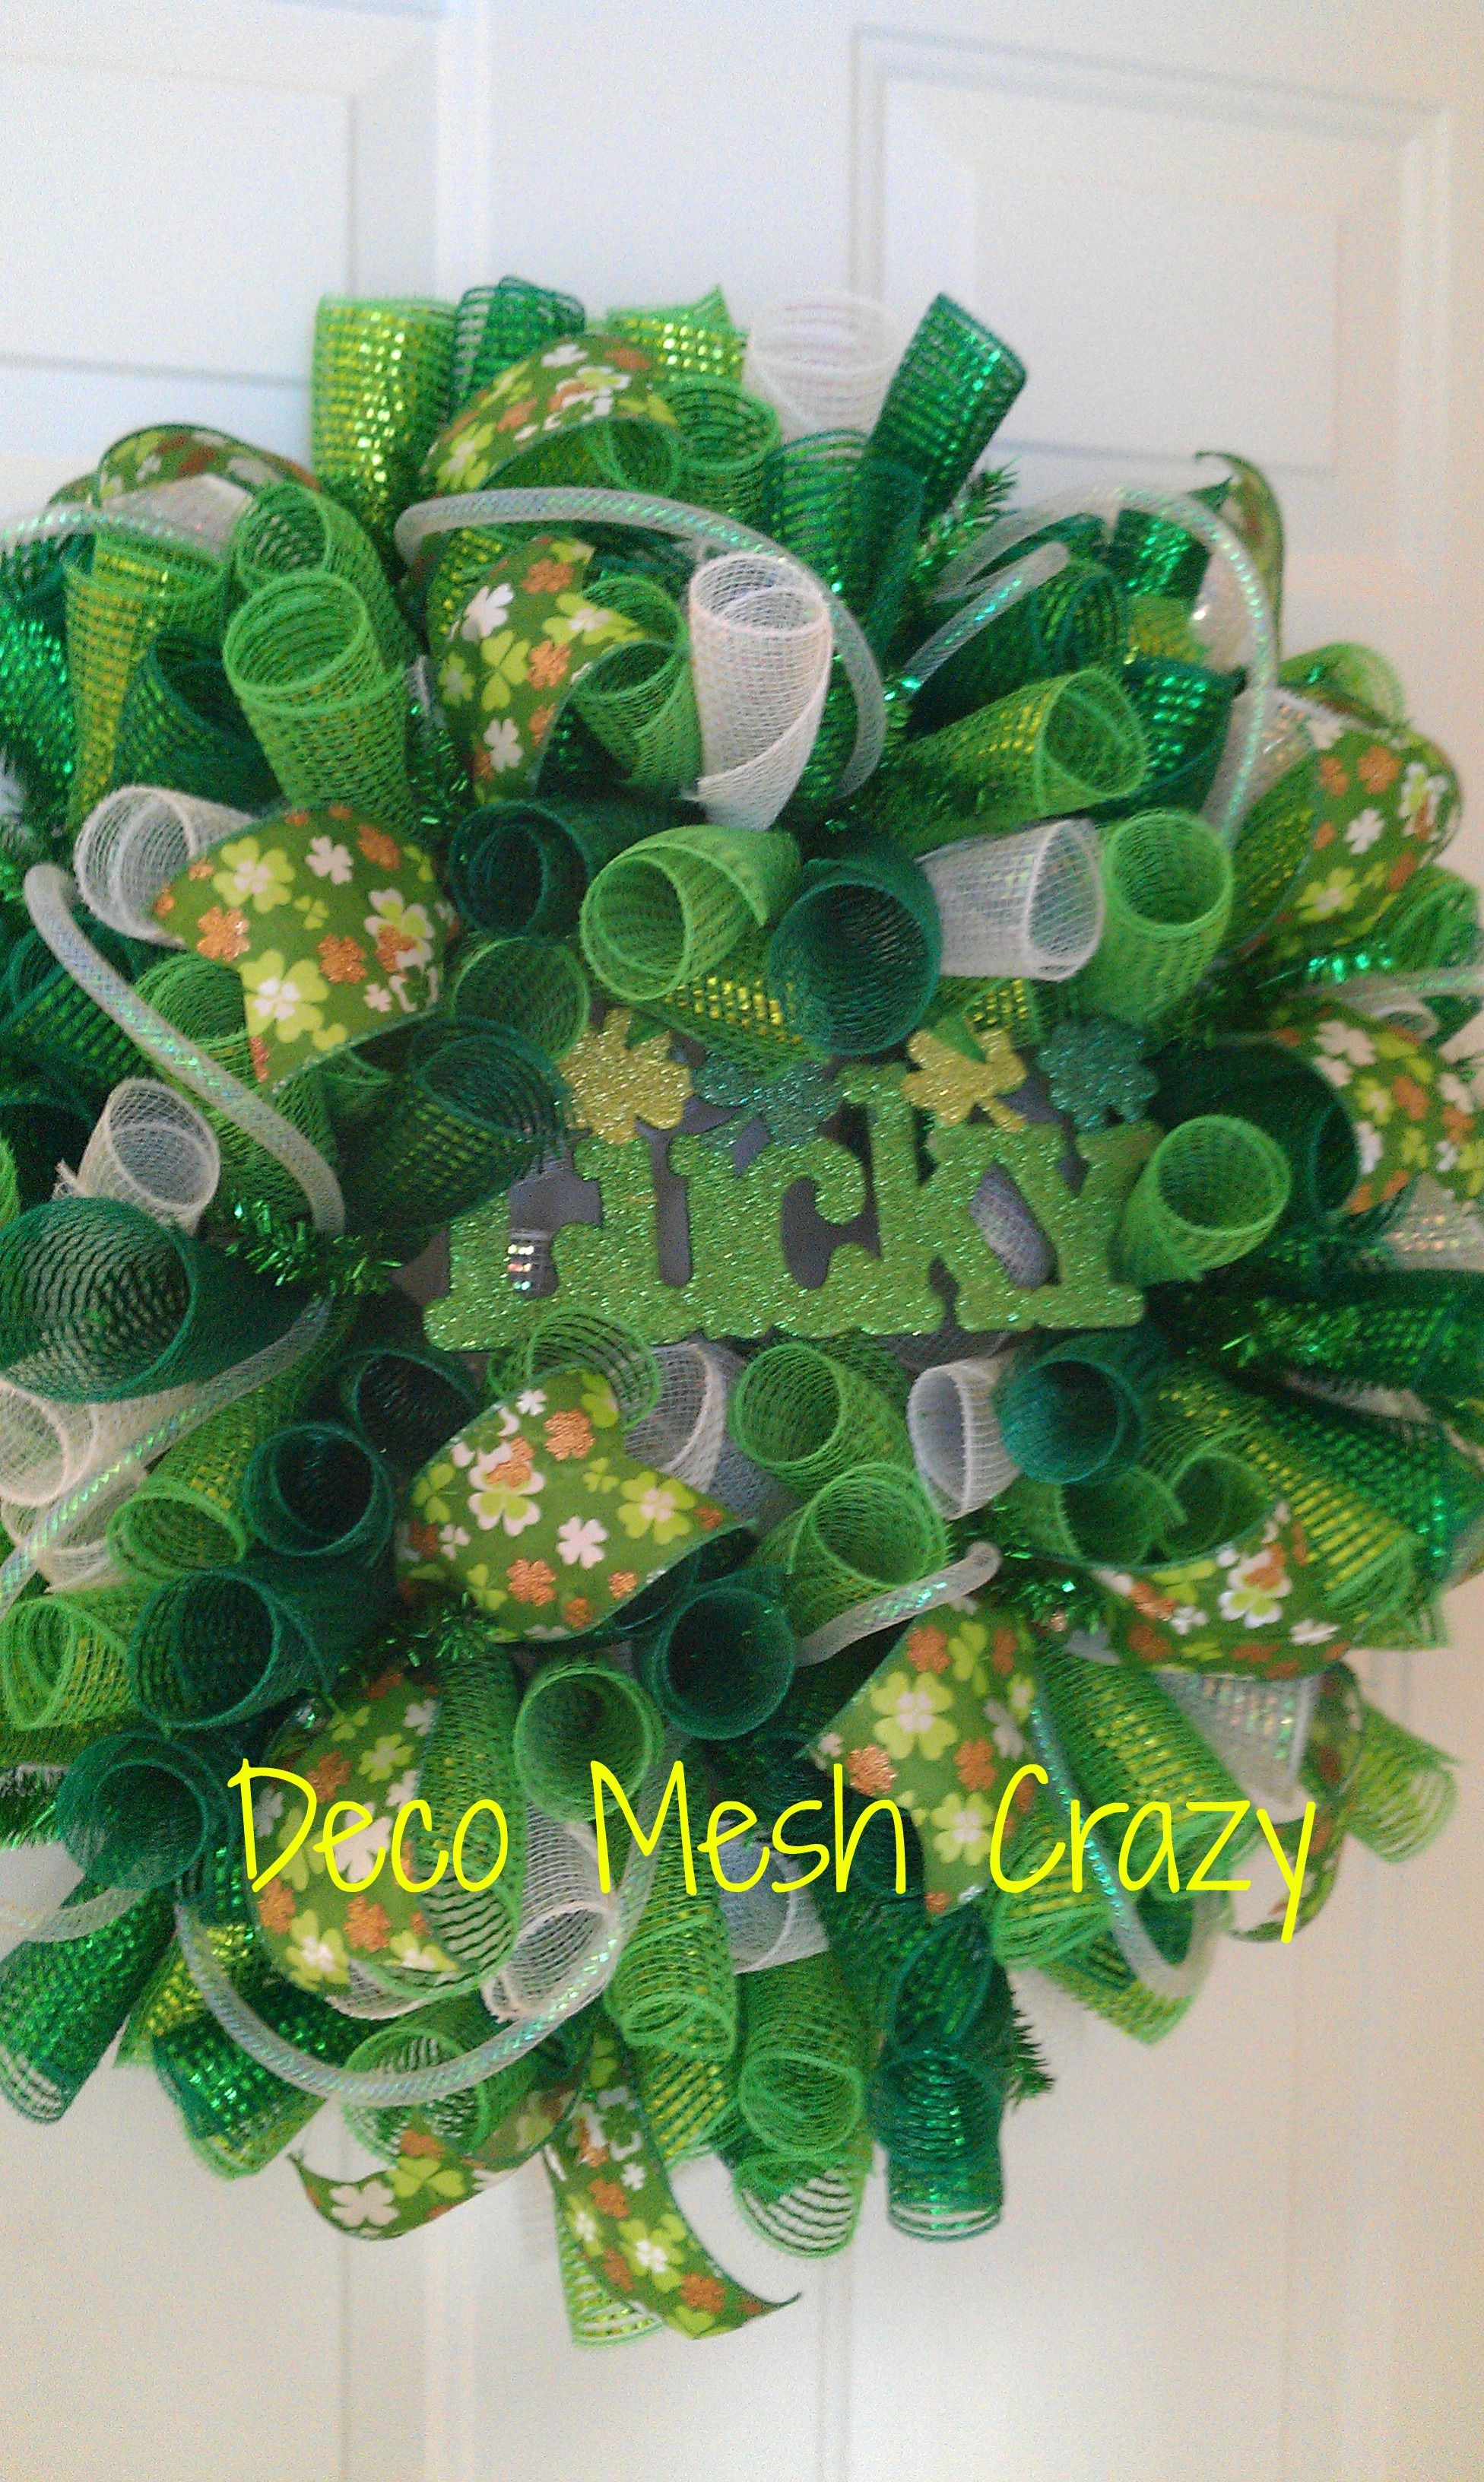 lucky st patrick 39 s day deco mesh wreath st patrick 39 s day. Black Bedroom Furniture Sets. Home Design Ideas